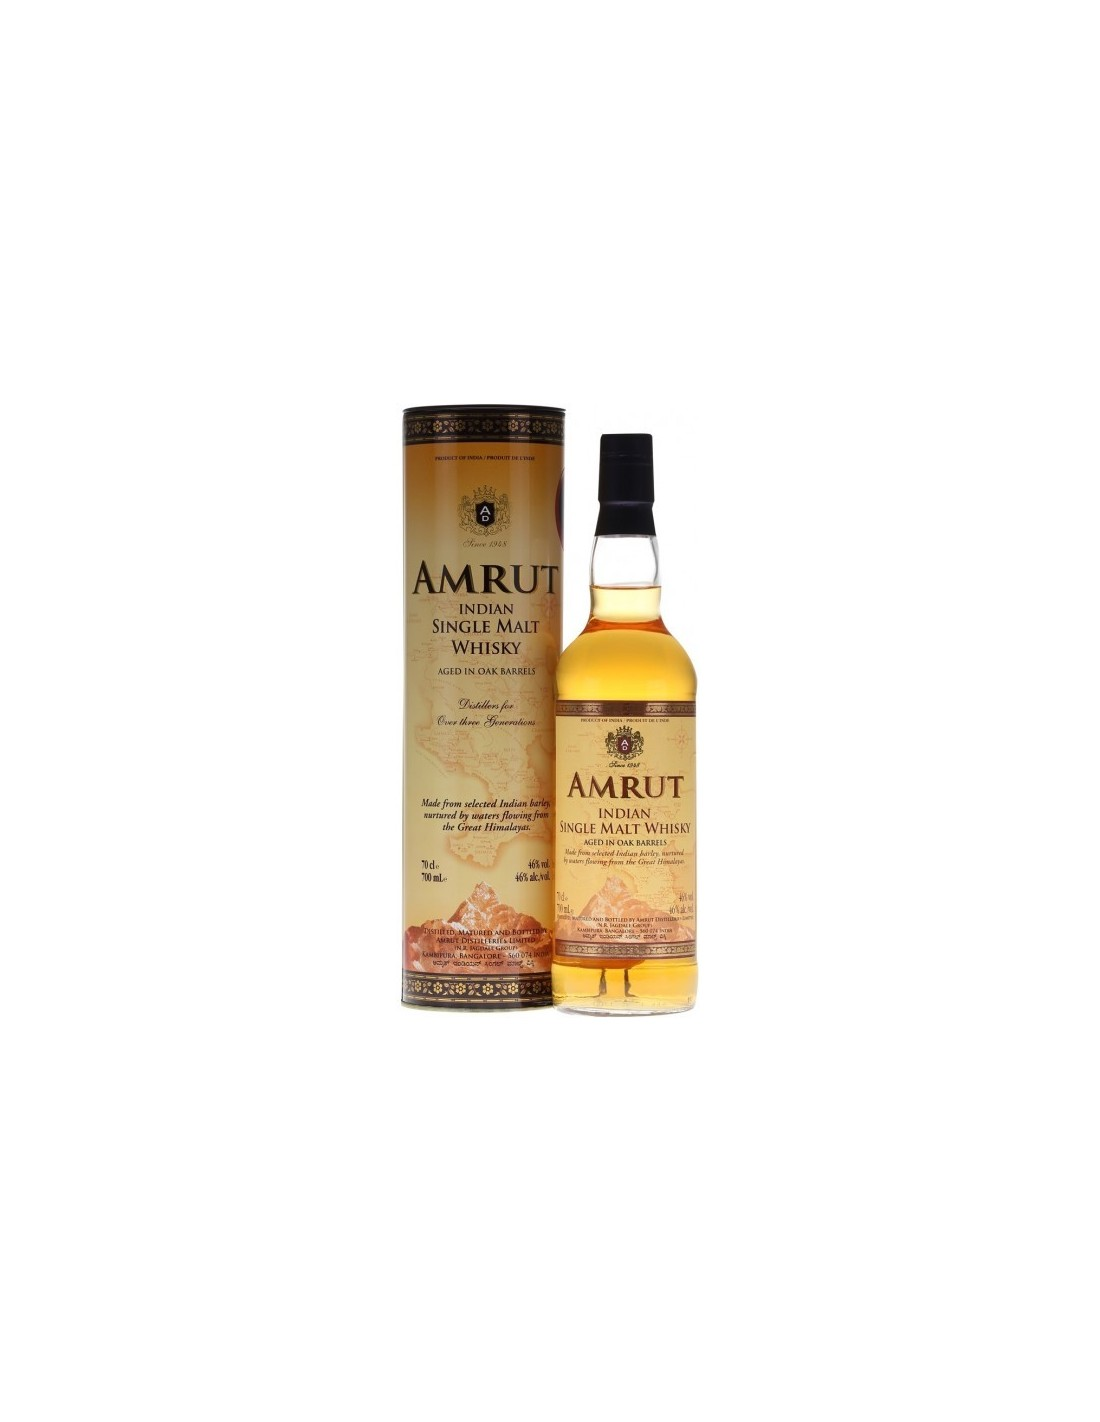 Whisky Amrut Indian Single Malt, 46% alc., 0.7L, India